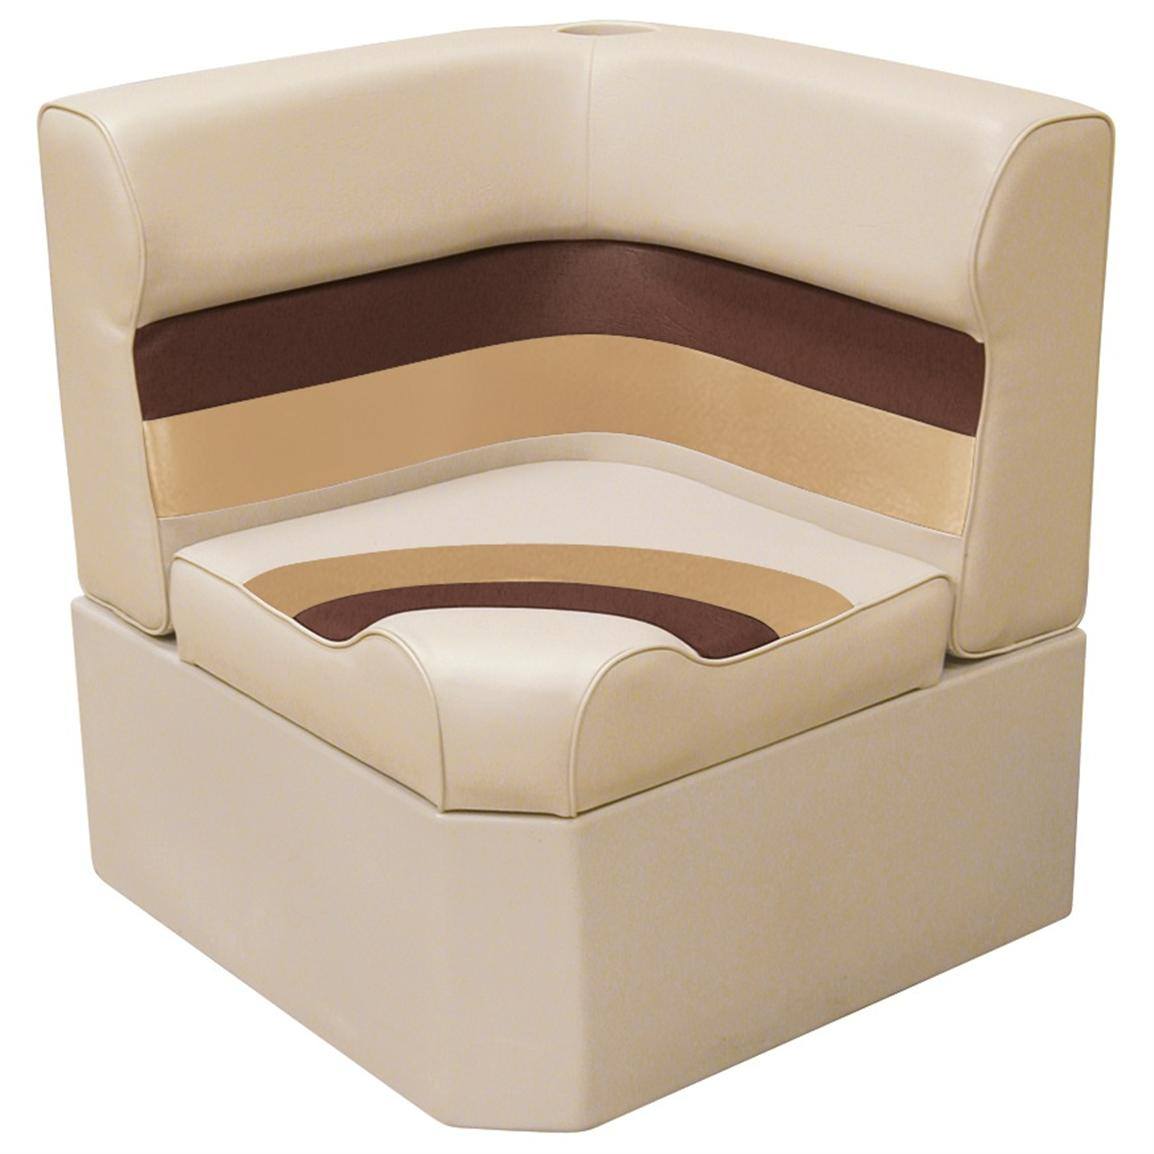 Wise® Deluxe Corner Pontoon Seat, Sand / Chestnut / Gold